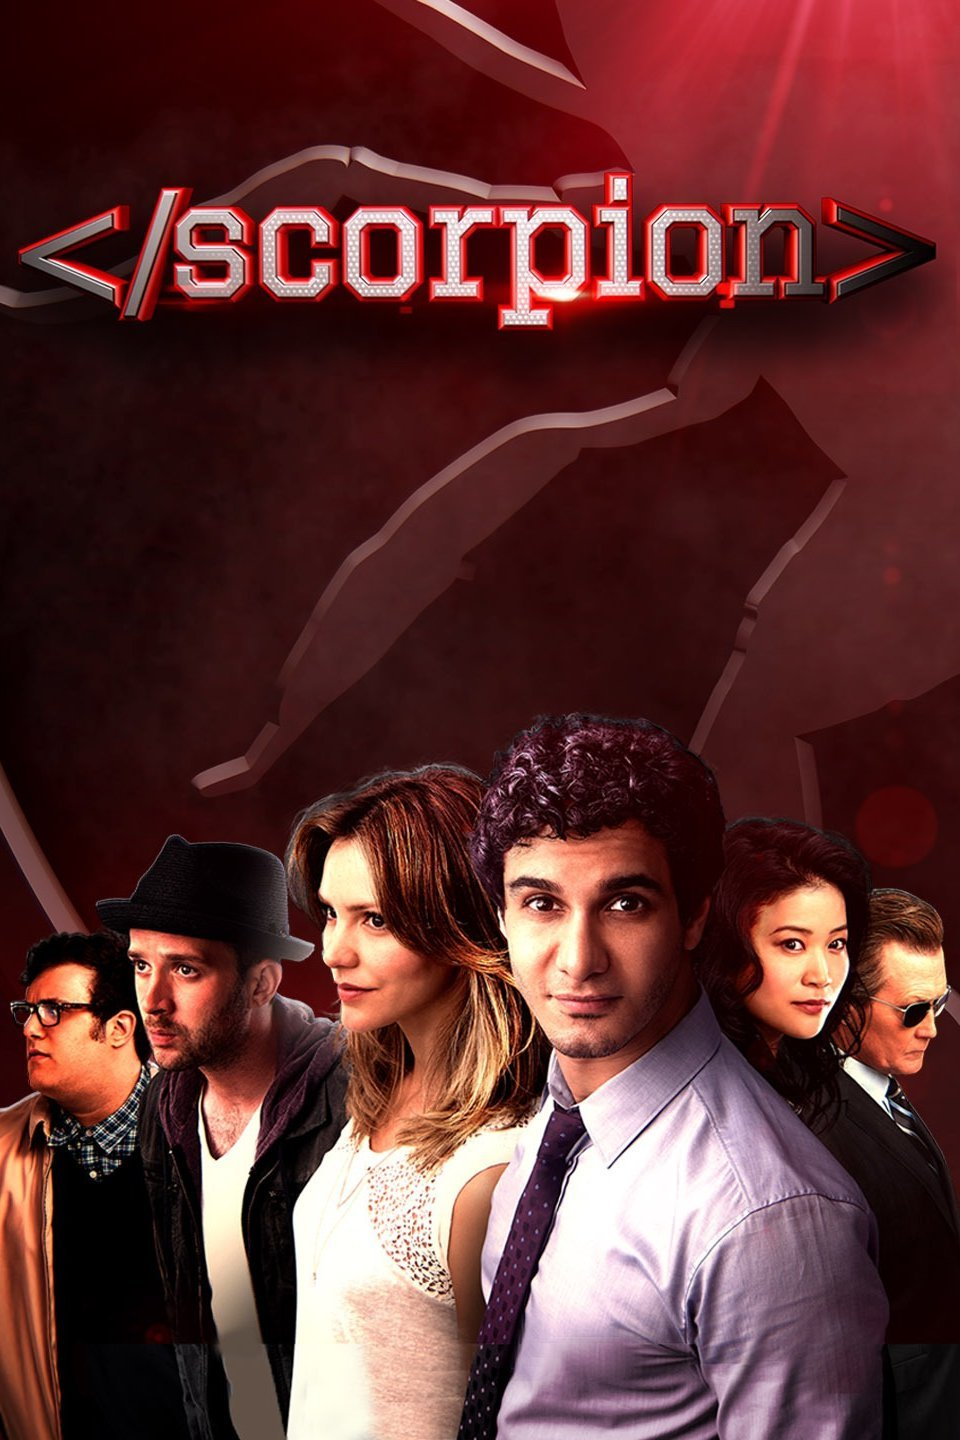 Scorpion Season 4 Episode 1 Download HDTV 480p 720p